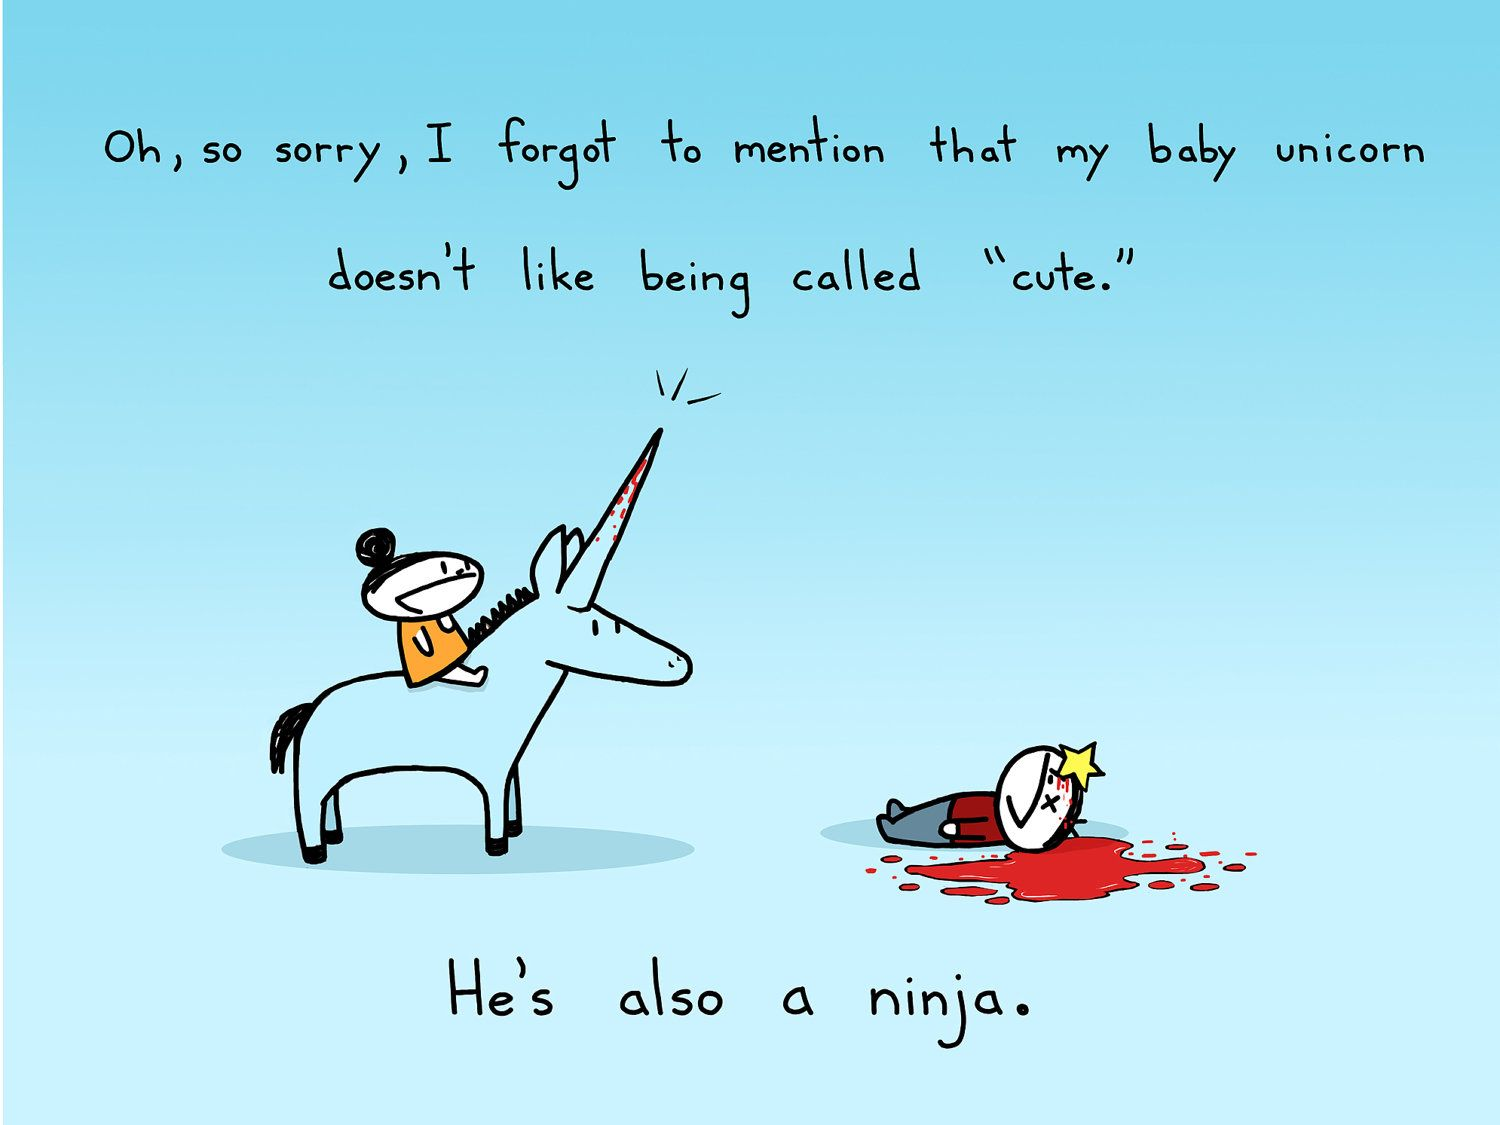 Narwhal and unicorn cartoon narwhal jokes funny pictures - Cartoon